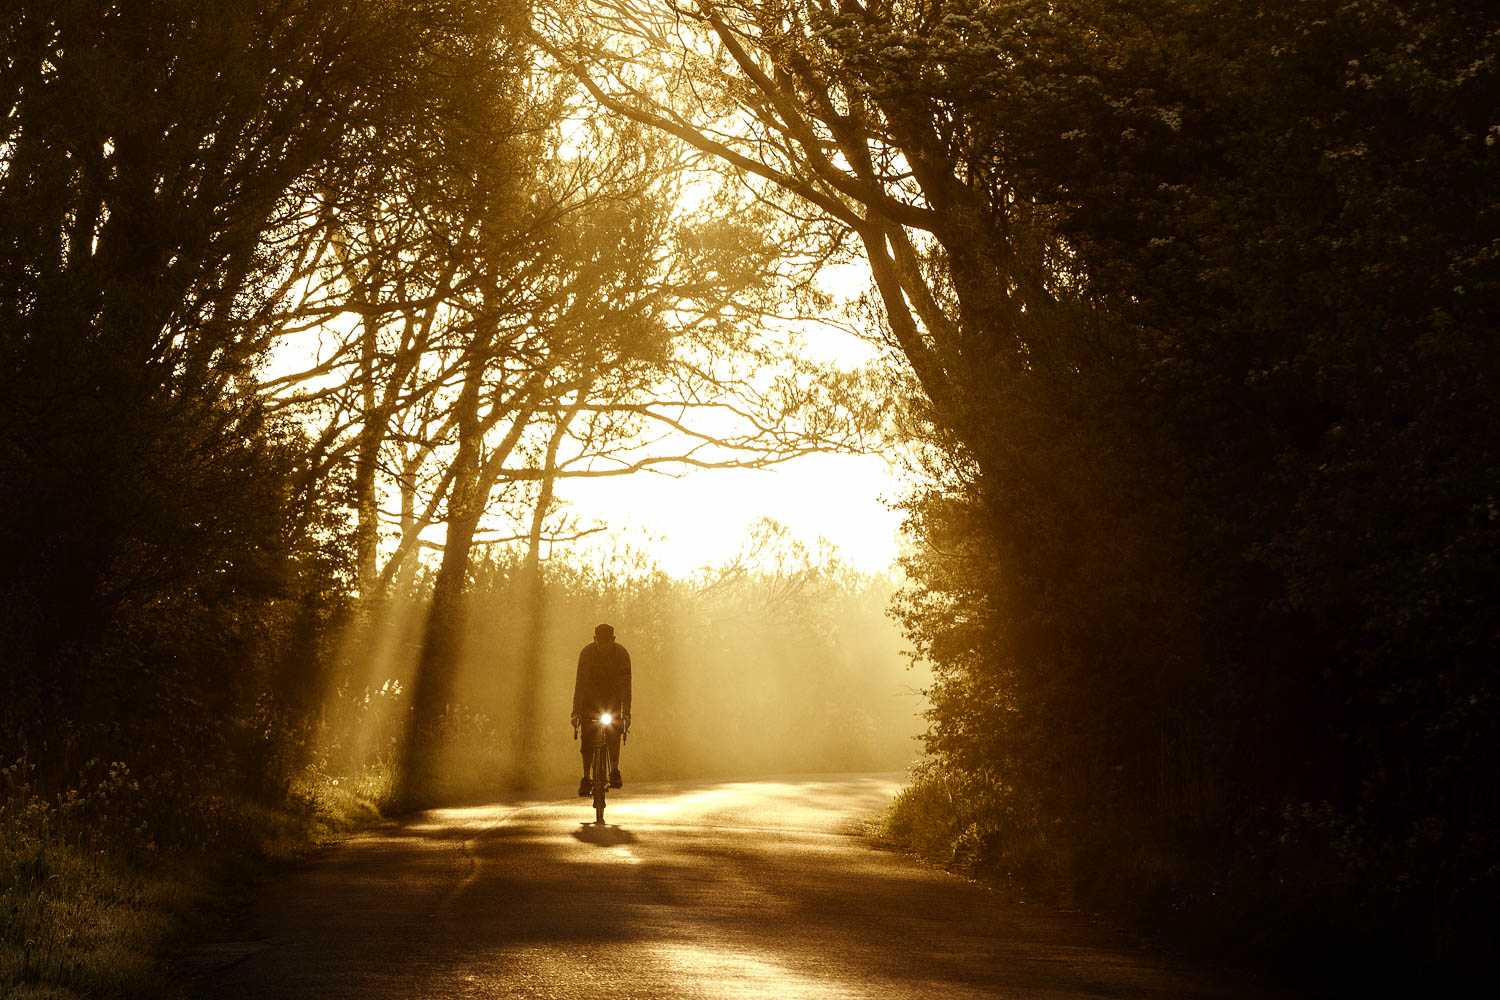 Cyclist on country lane backlit by a splayed fan of sunshine